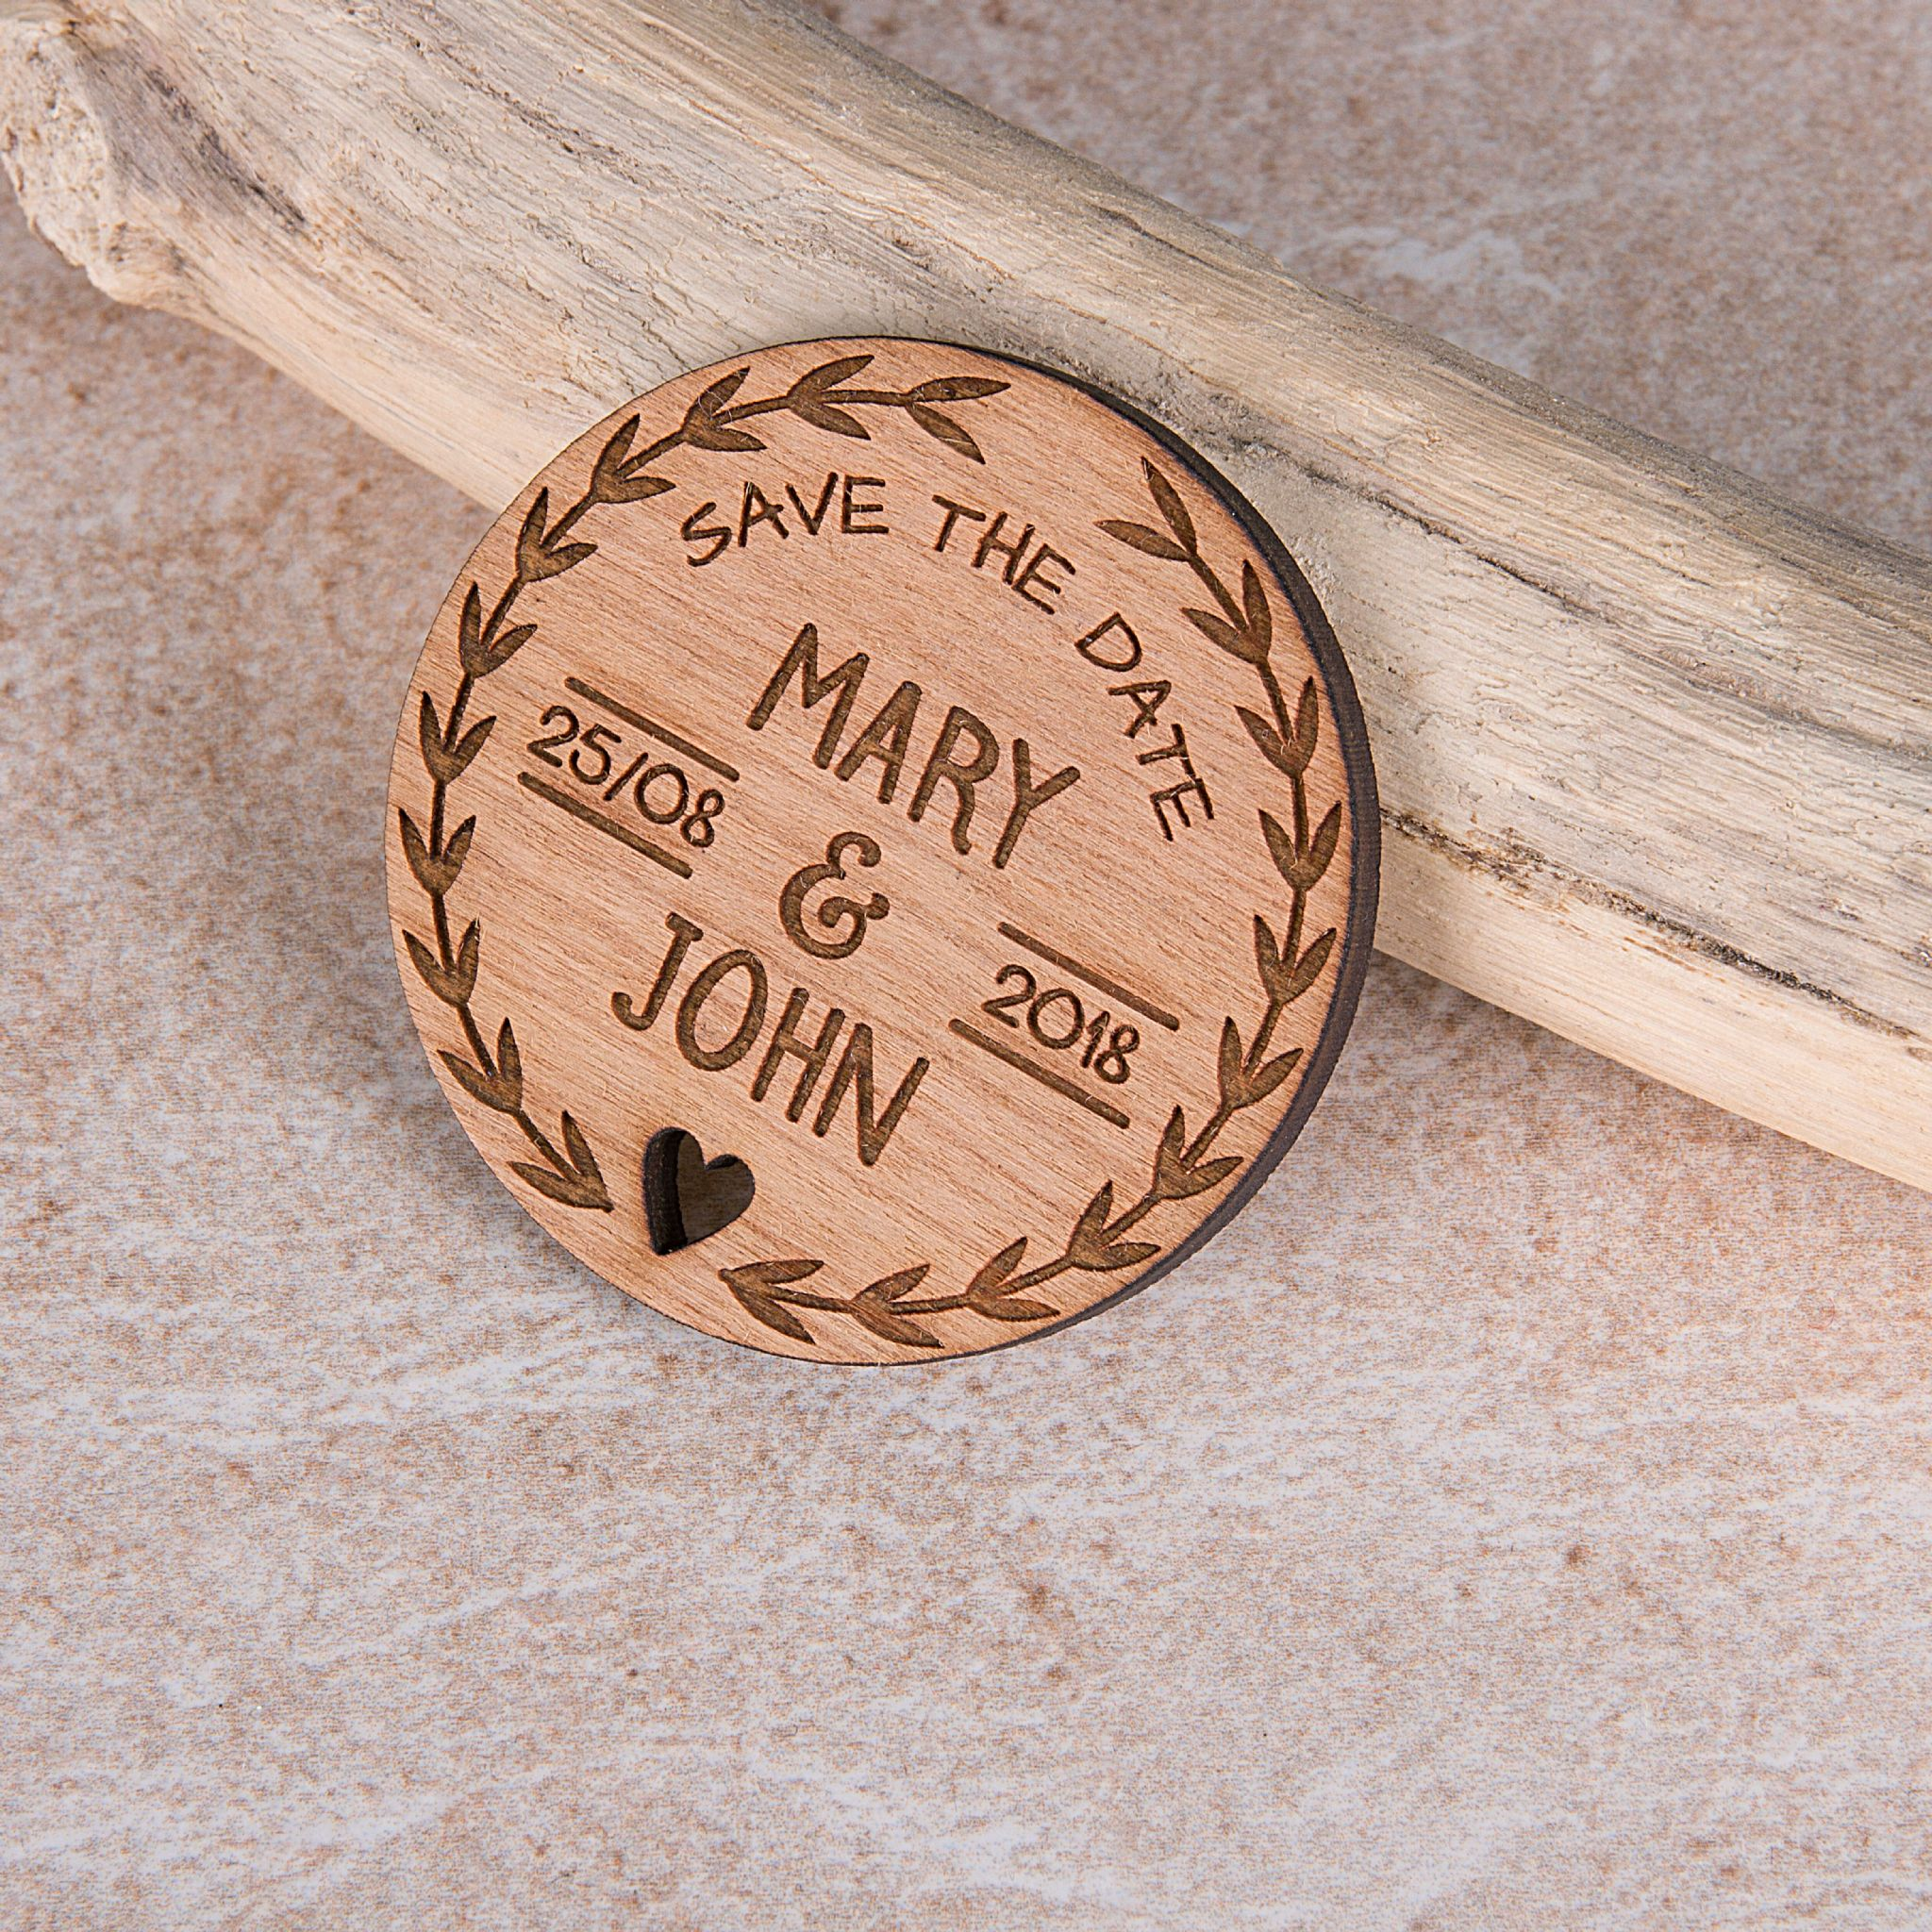 Little Gifts With Love - Personalised Rustic Cherry Wooden Round Save The Date Fridge Magnet Invites